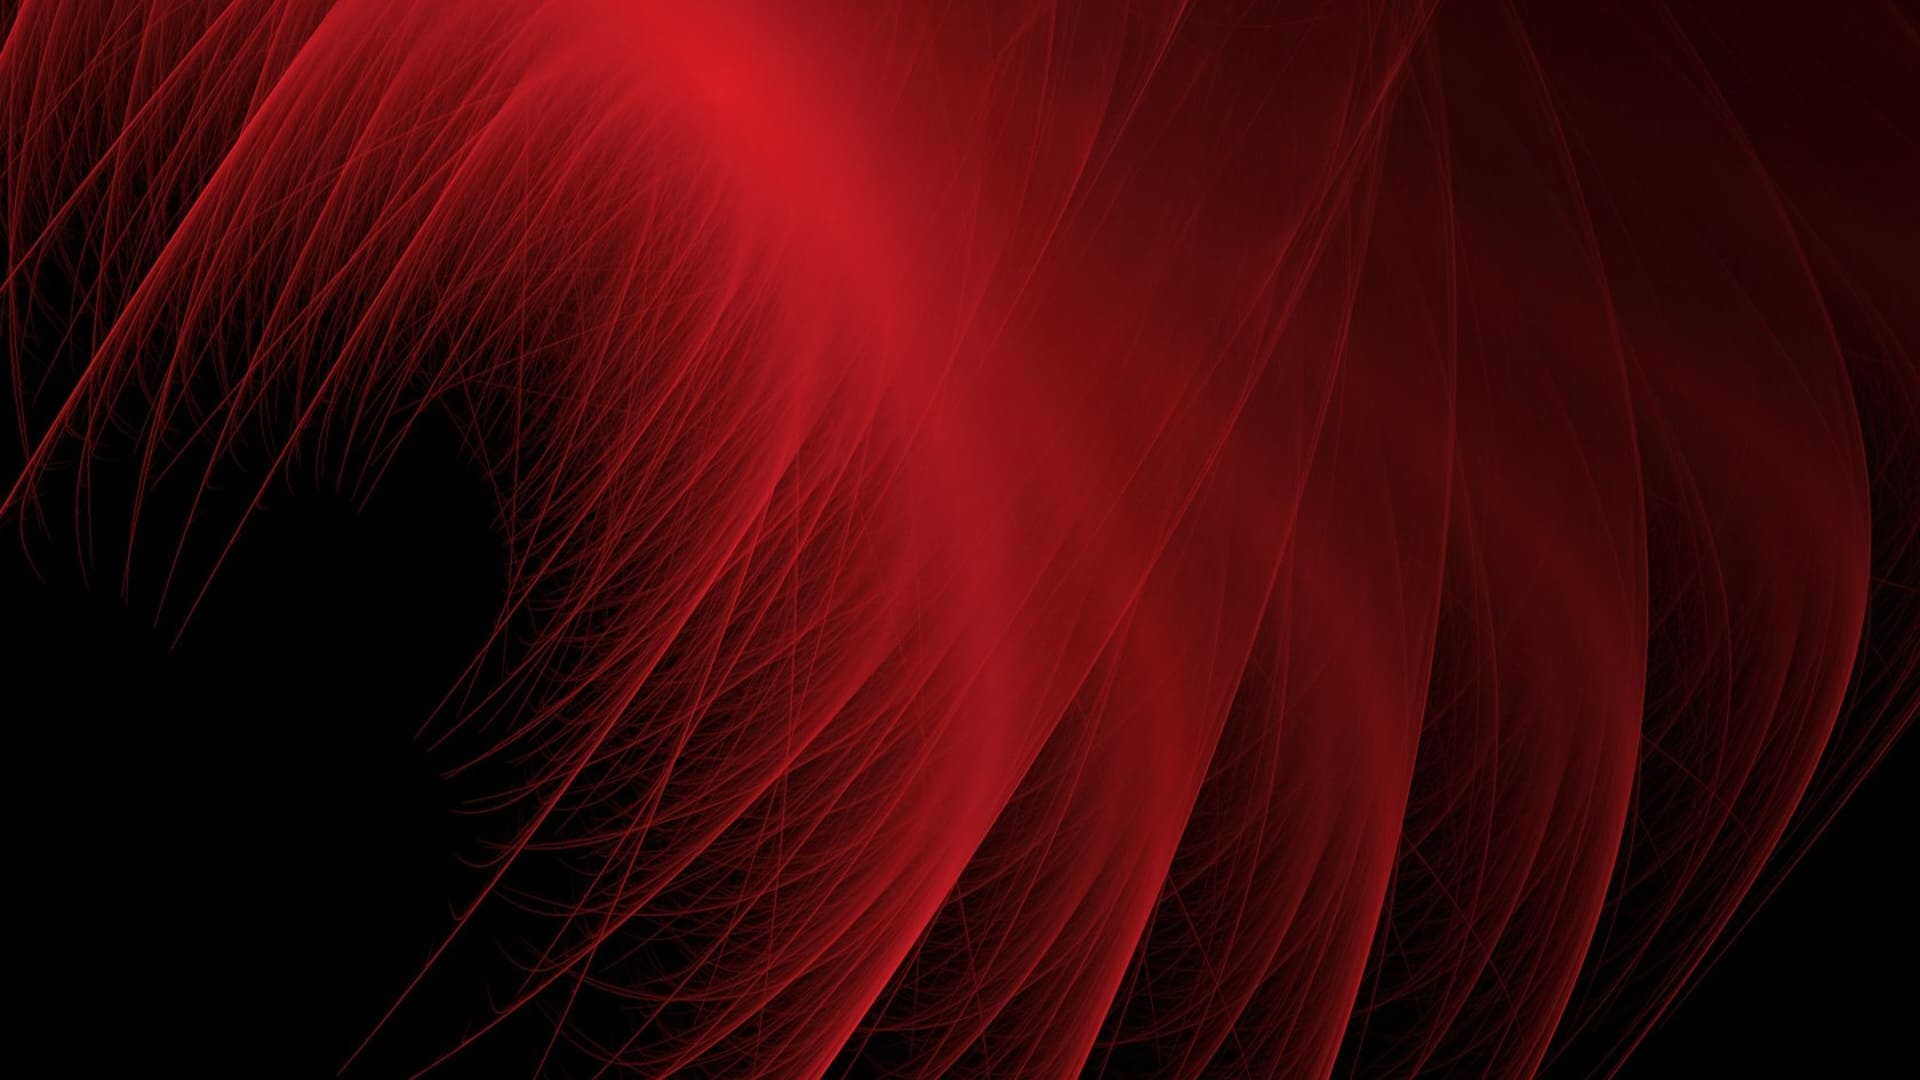 Red and black pattern background